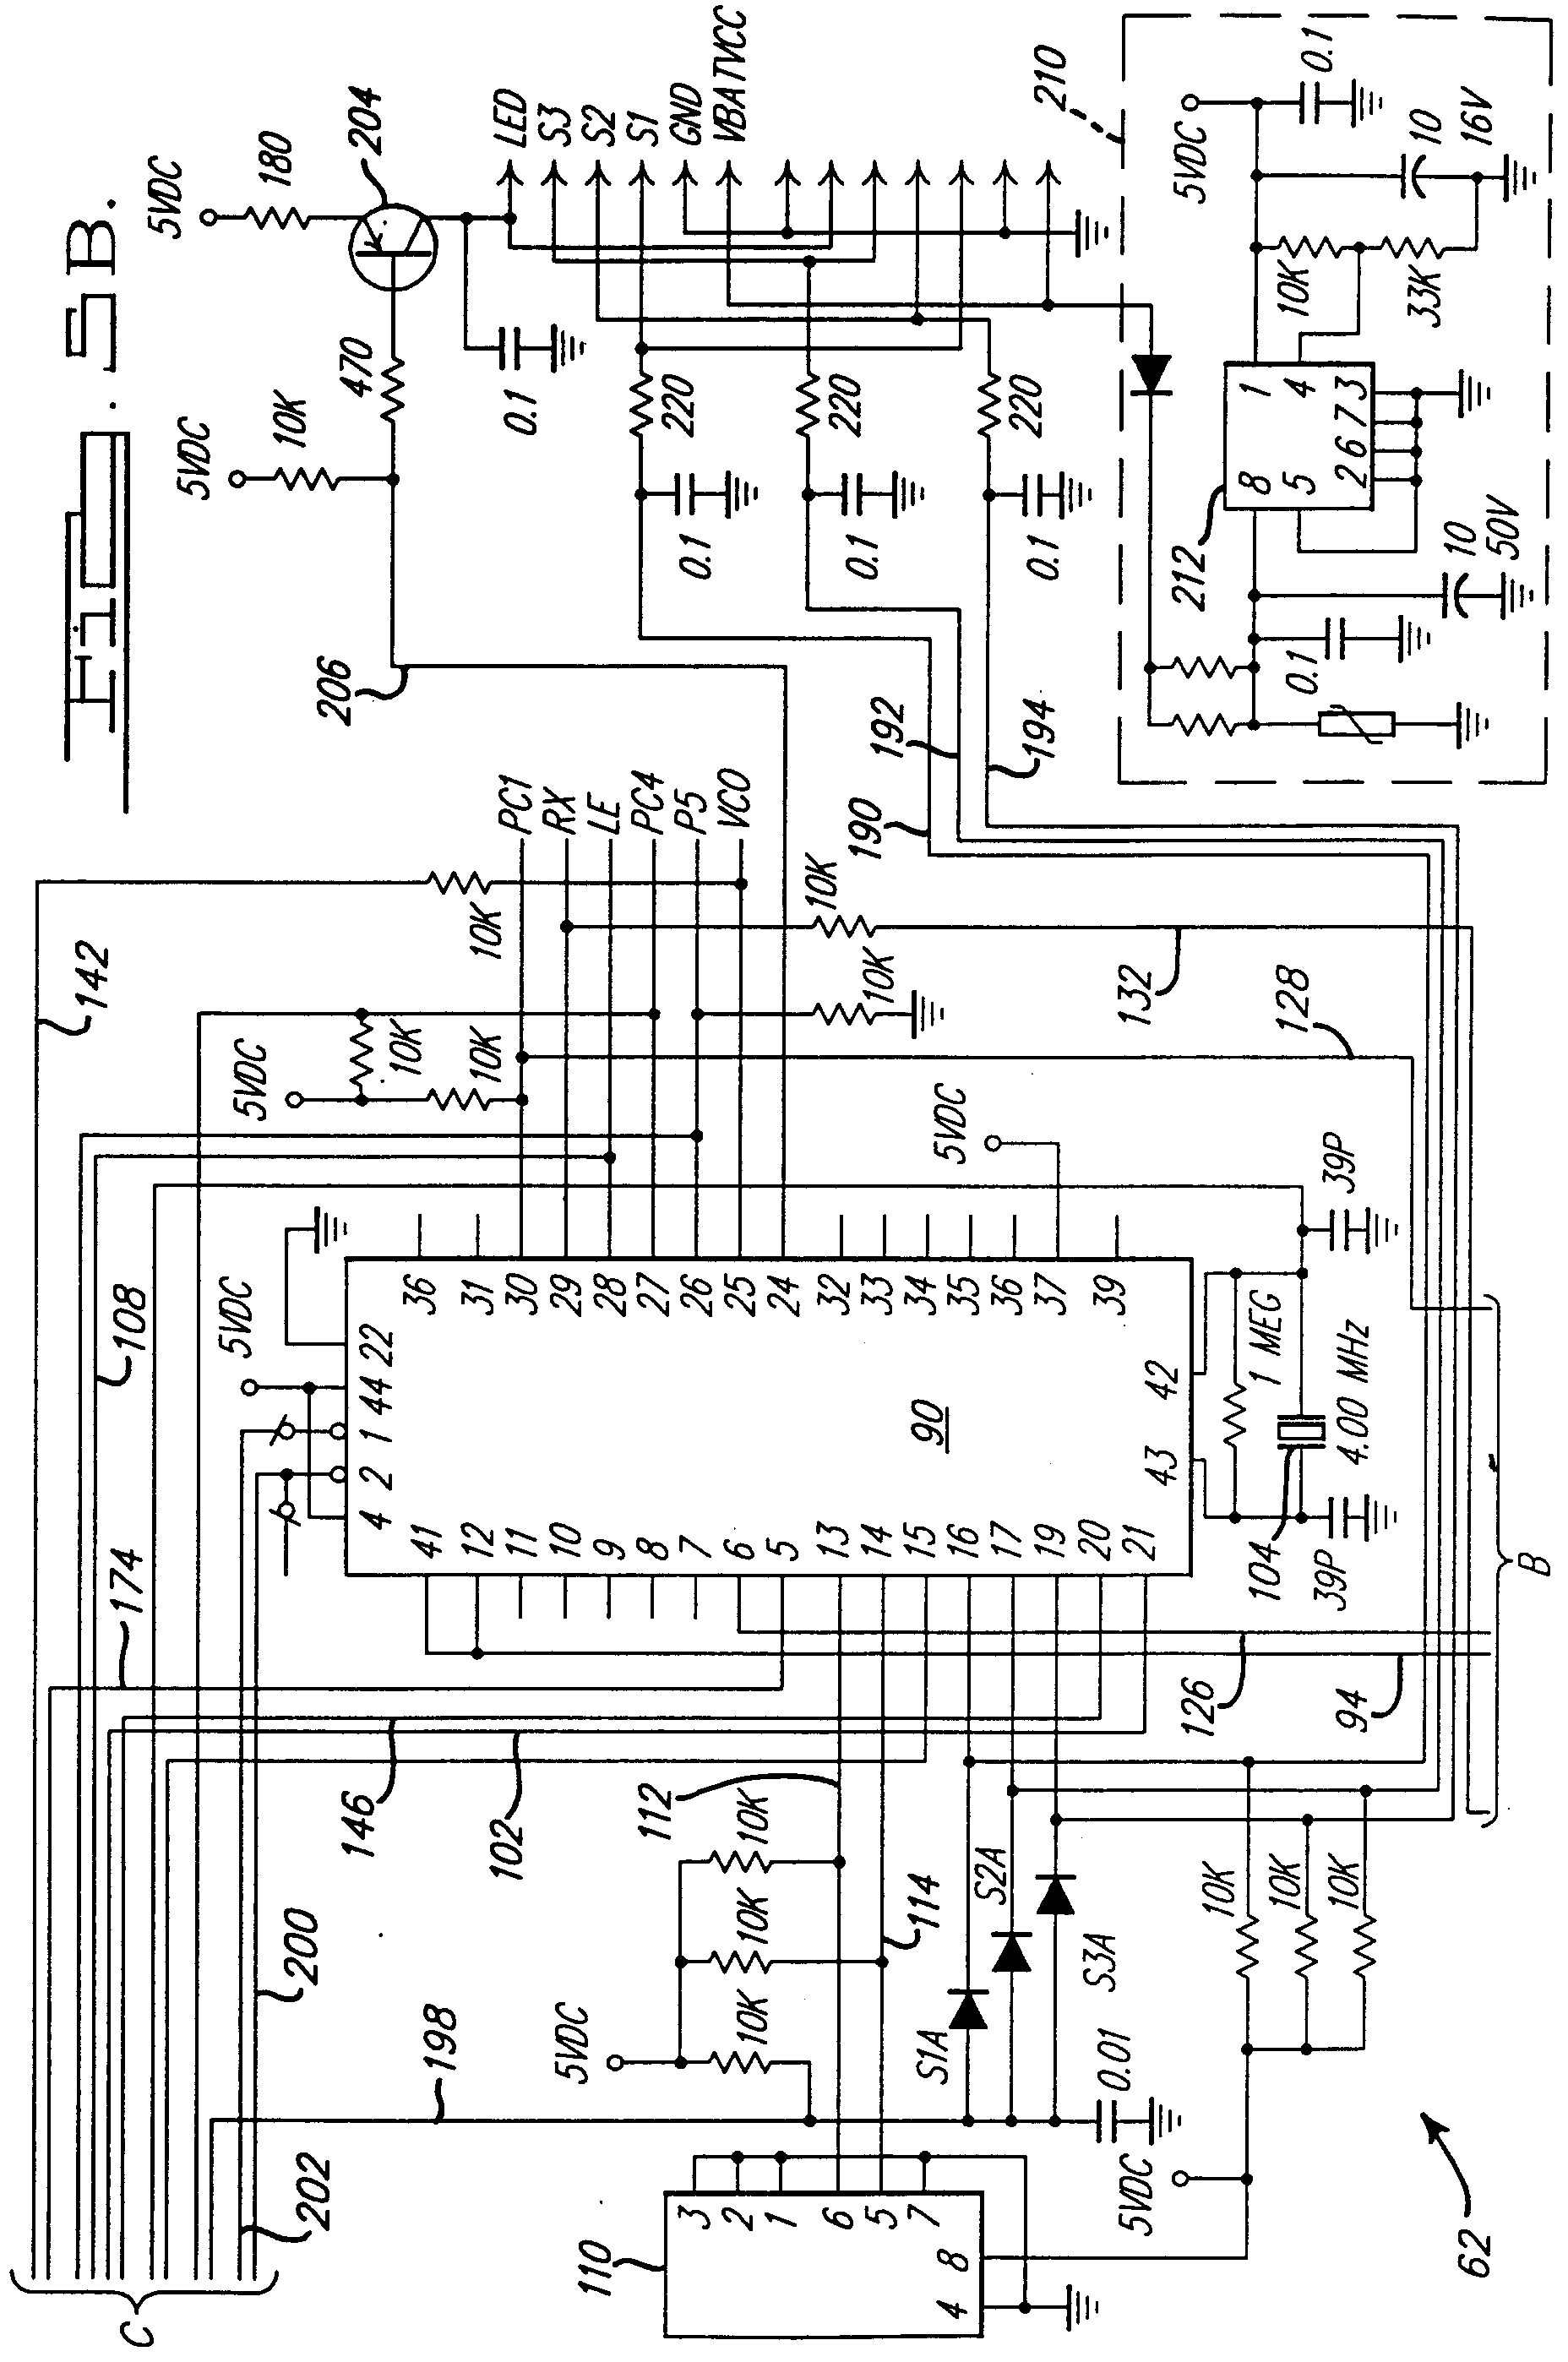 4ddf47acab389d85d19bb2433cdaa9fe genie garage door opener circuit board schematic voteno123